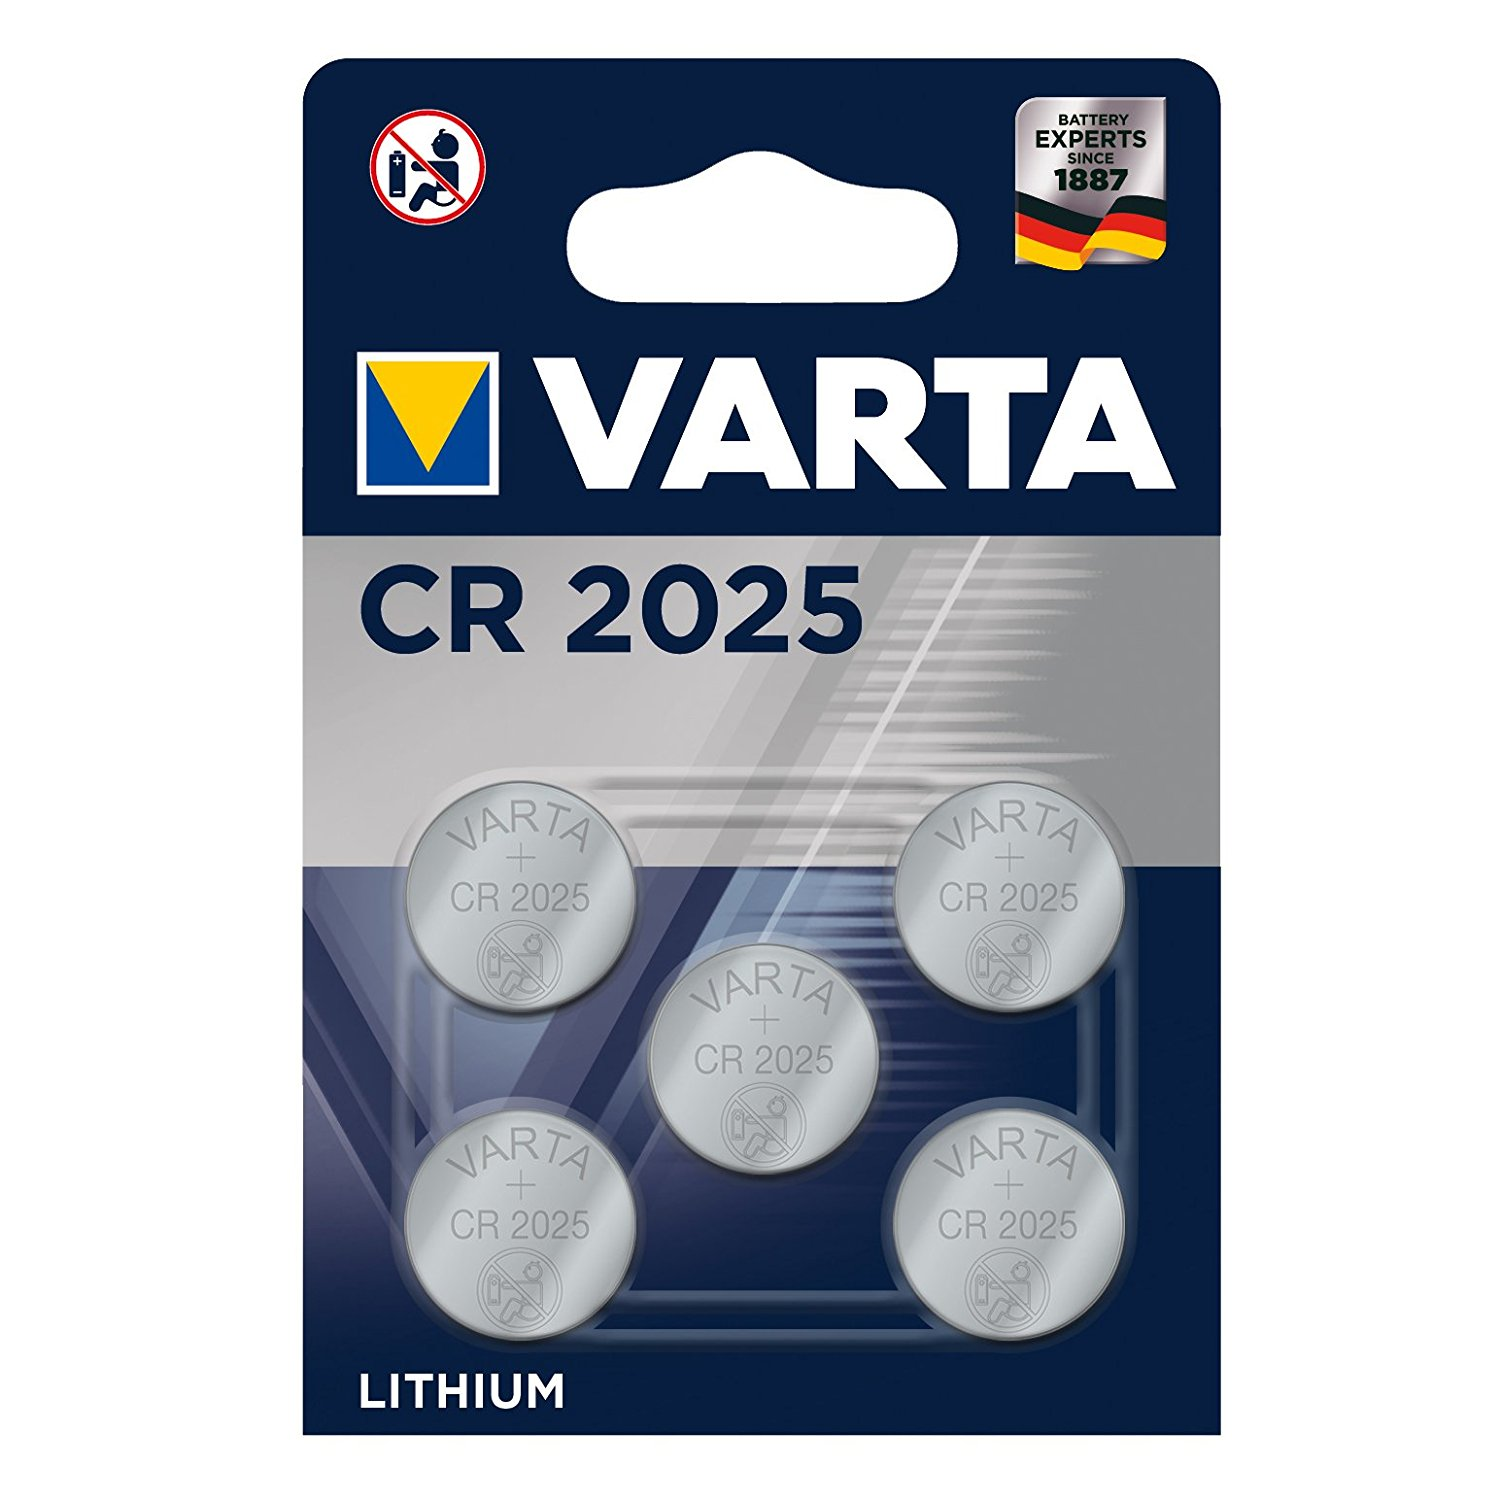 Knopfzelle 3v Voltronic B2b Shop Batteriedistribution Varta Lithium